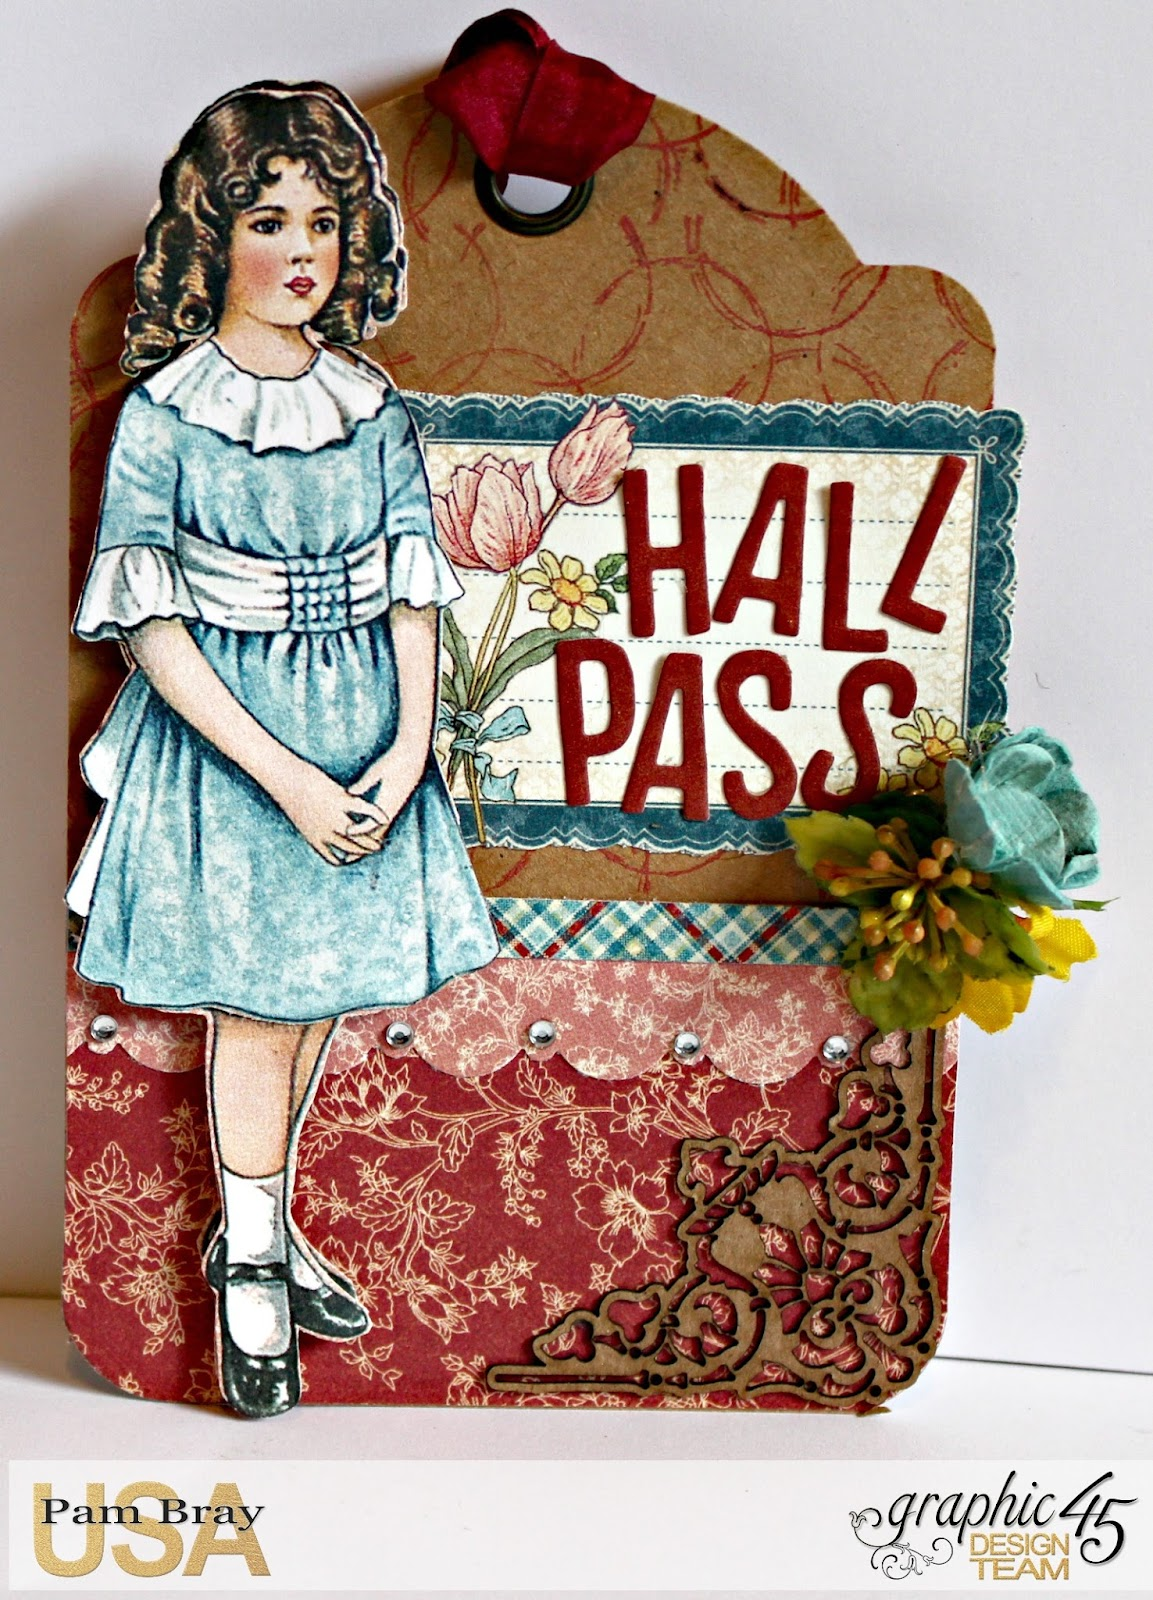 2017 G45 Brand Ambassadors- 2017 Pam Bray  - June 2017 - Penny's Paper Dolls Desk Organizer  with Tutorial Photo 9_7254.jpg